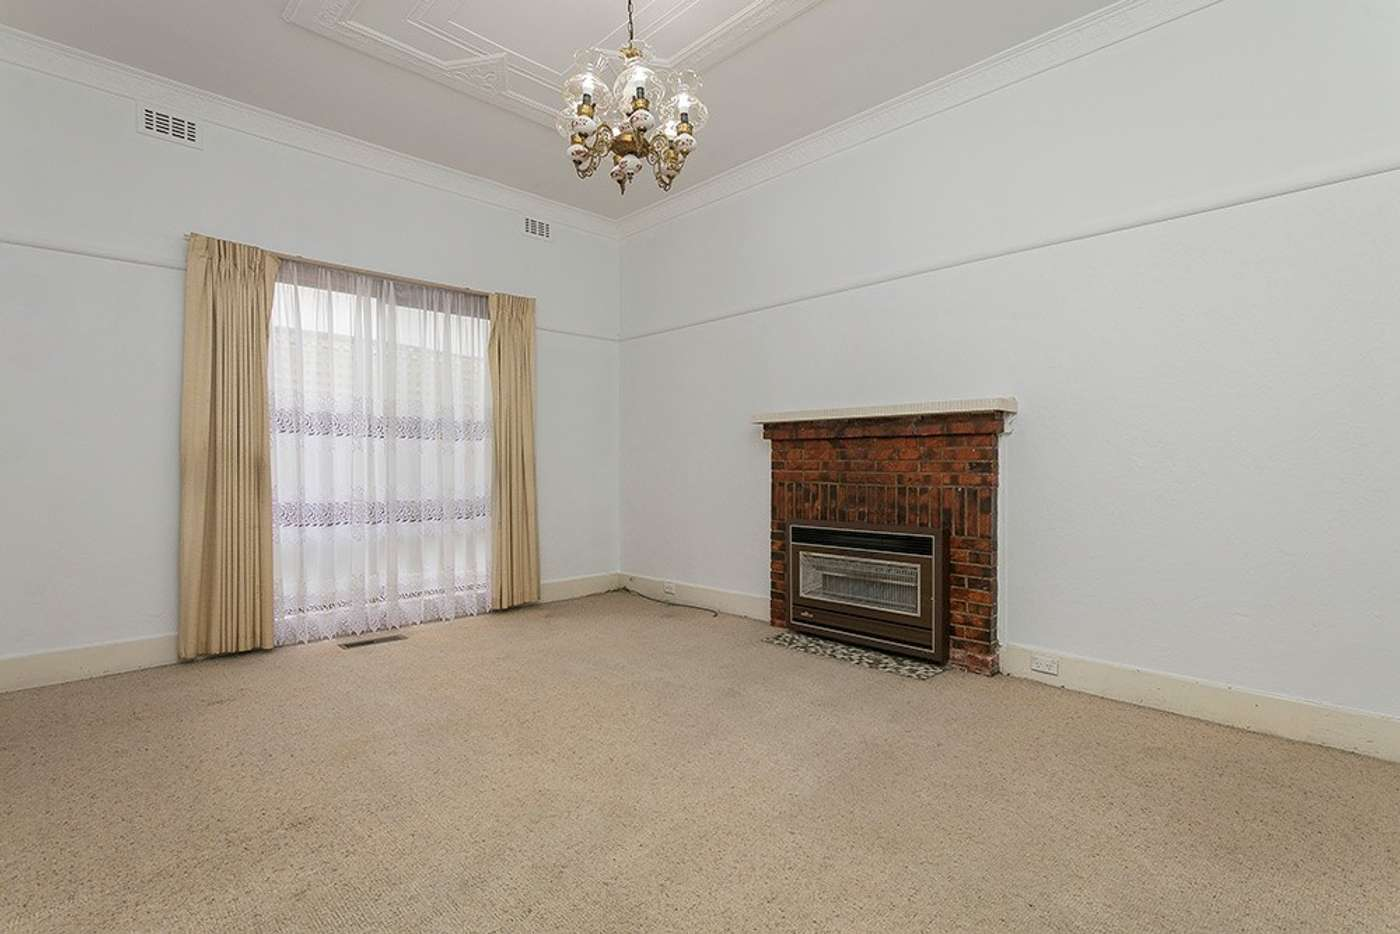 Sixth view of Homely house listing, 3 Deakin Street, Essendon VIC 3040